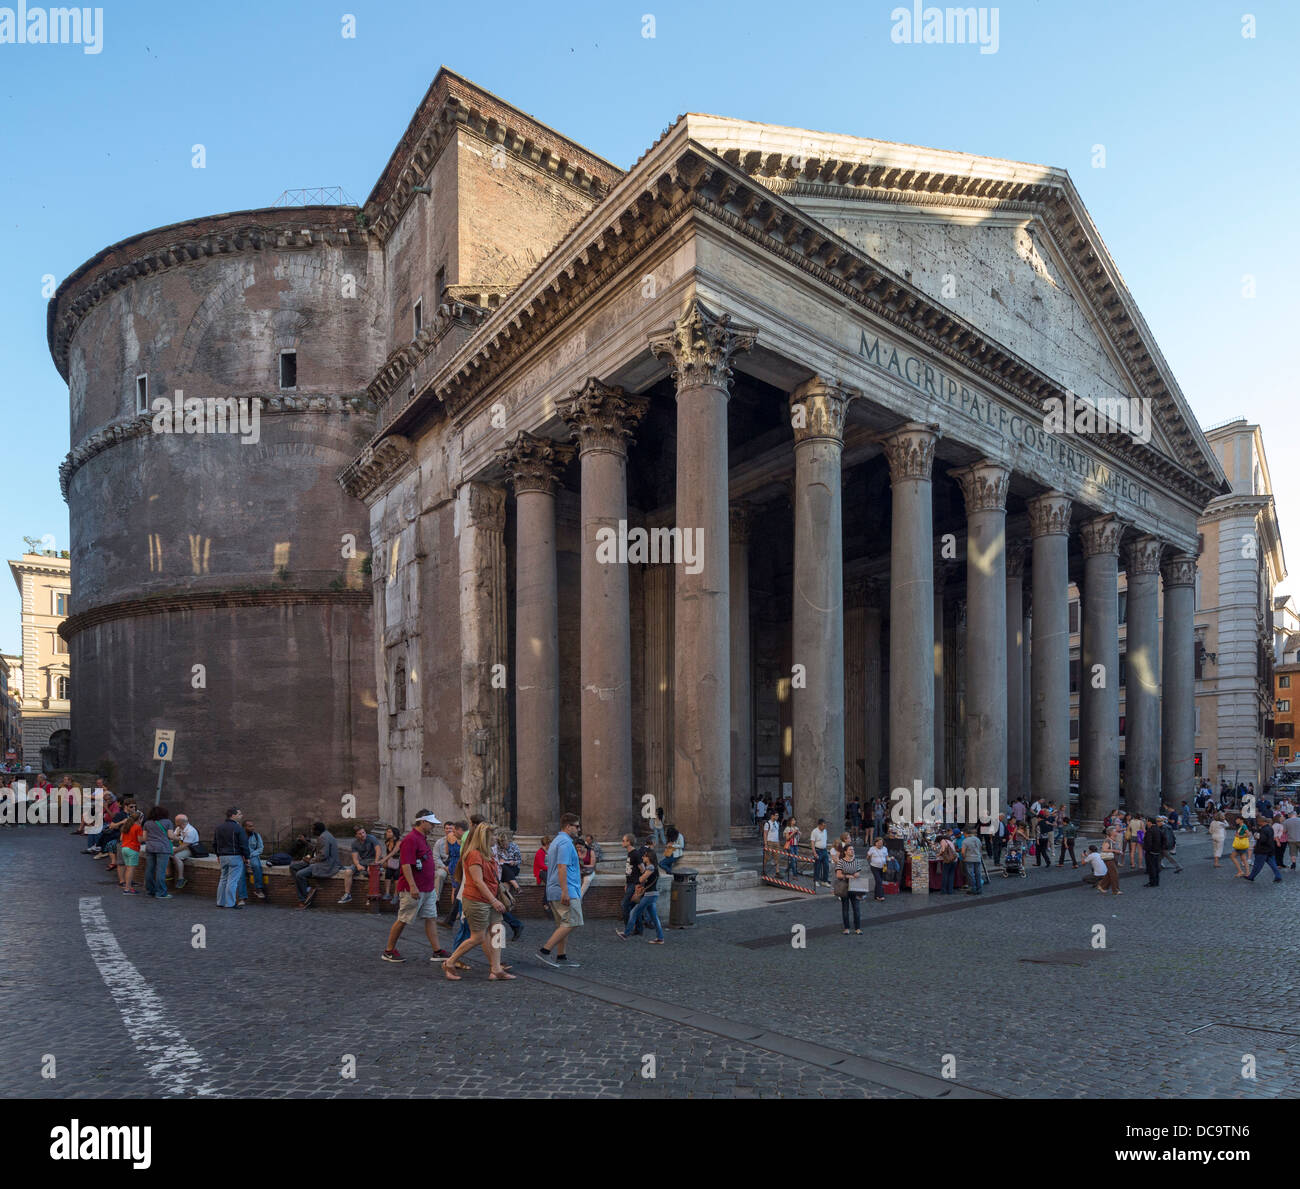 dome and pediment of Pantheon, Rome, Italy Stock Photo